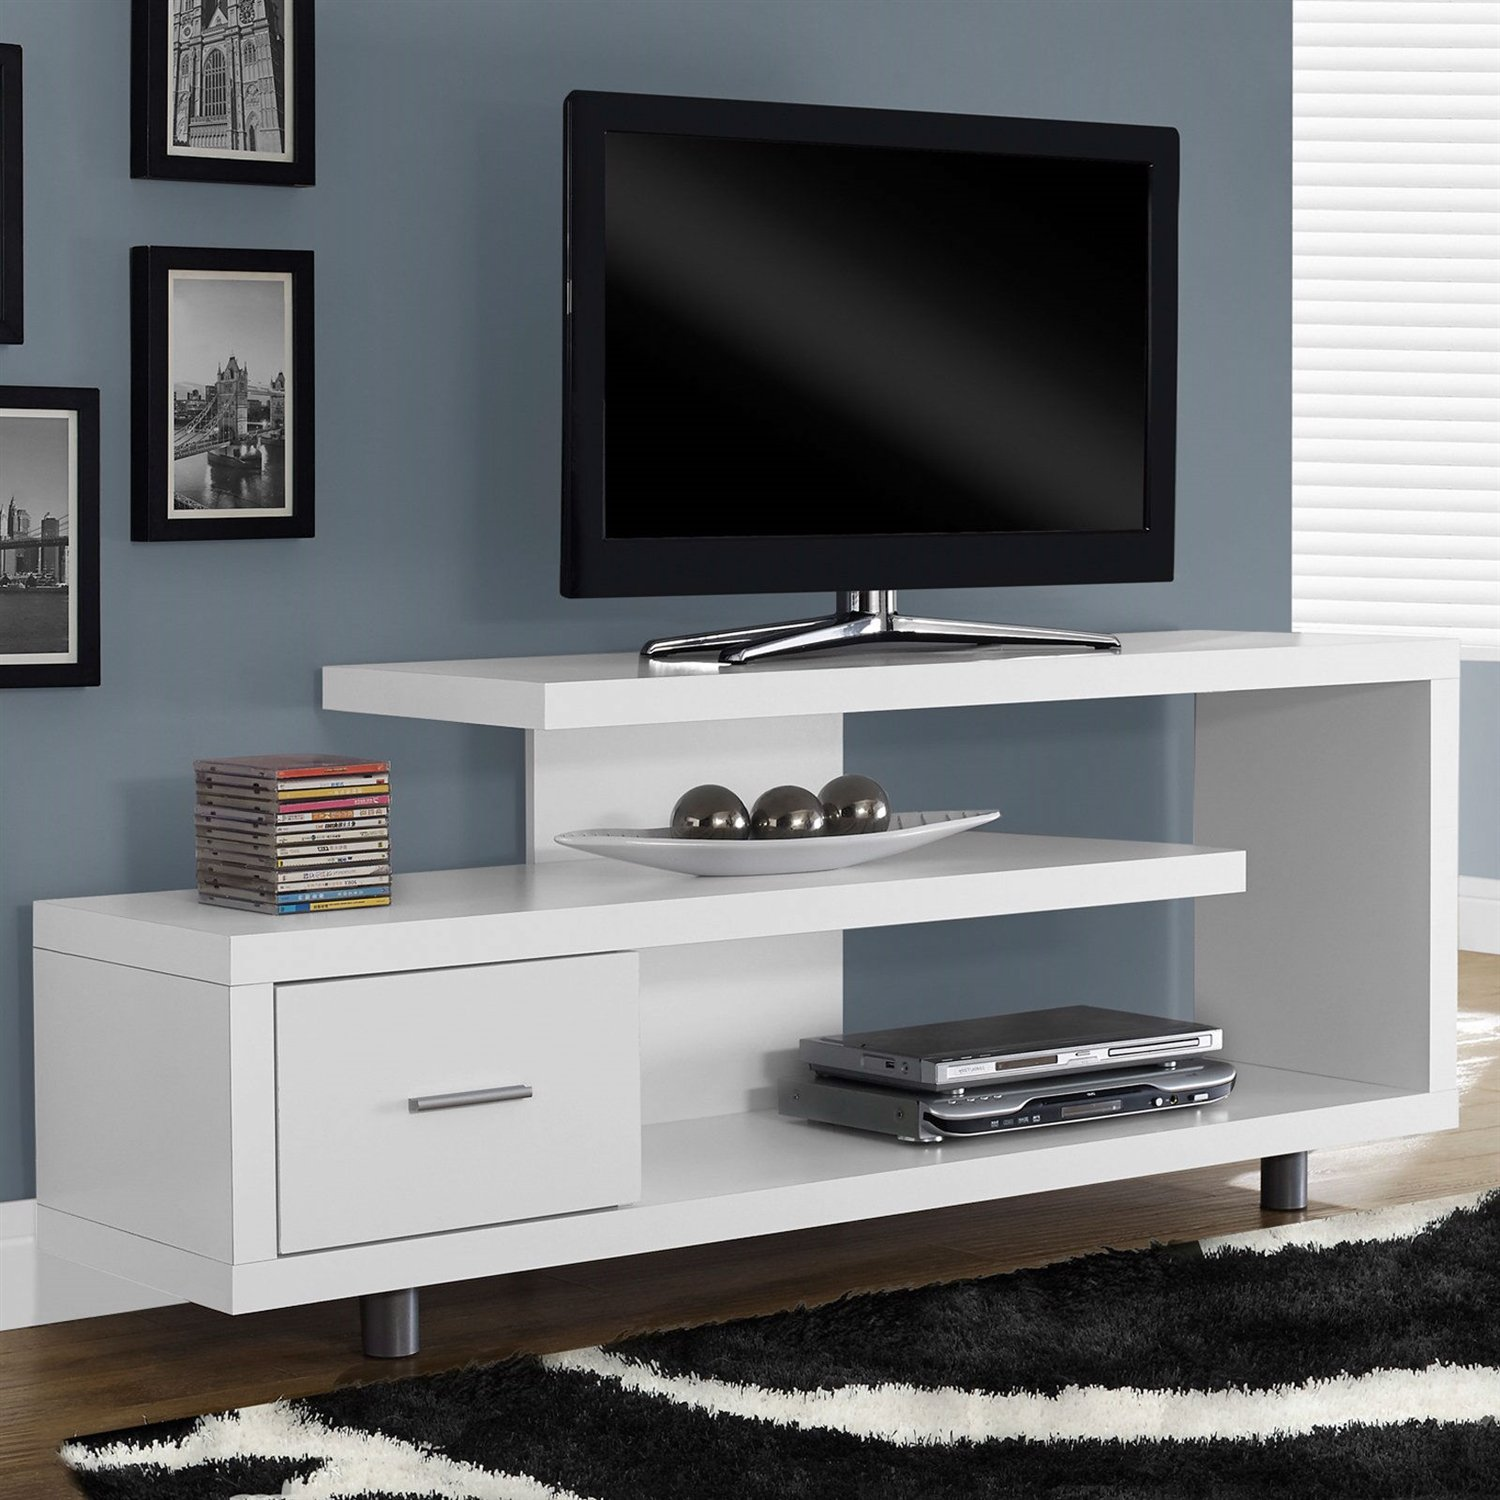 White Modern Tv Stand Fits Up To 60 Inch Flat Screen Tv Entree